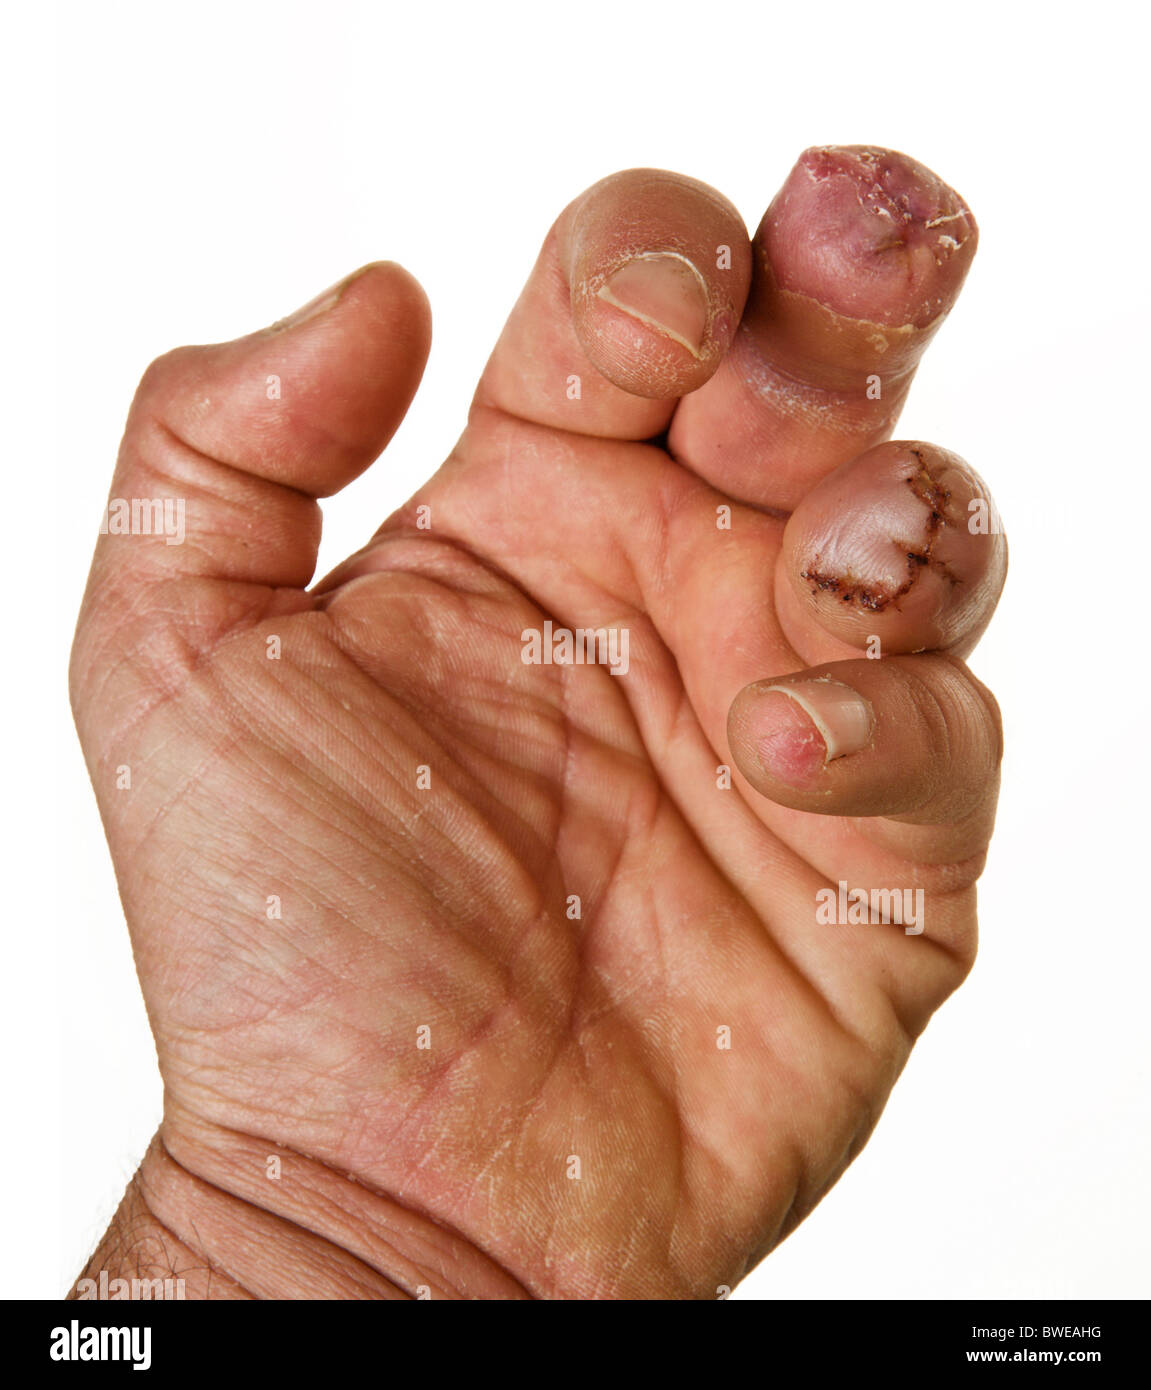 male close up of left hand on white background missing two fingers - Stock Image